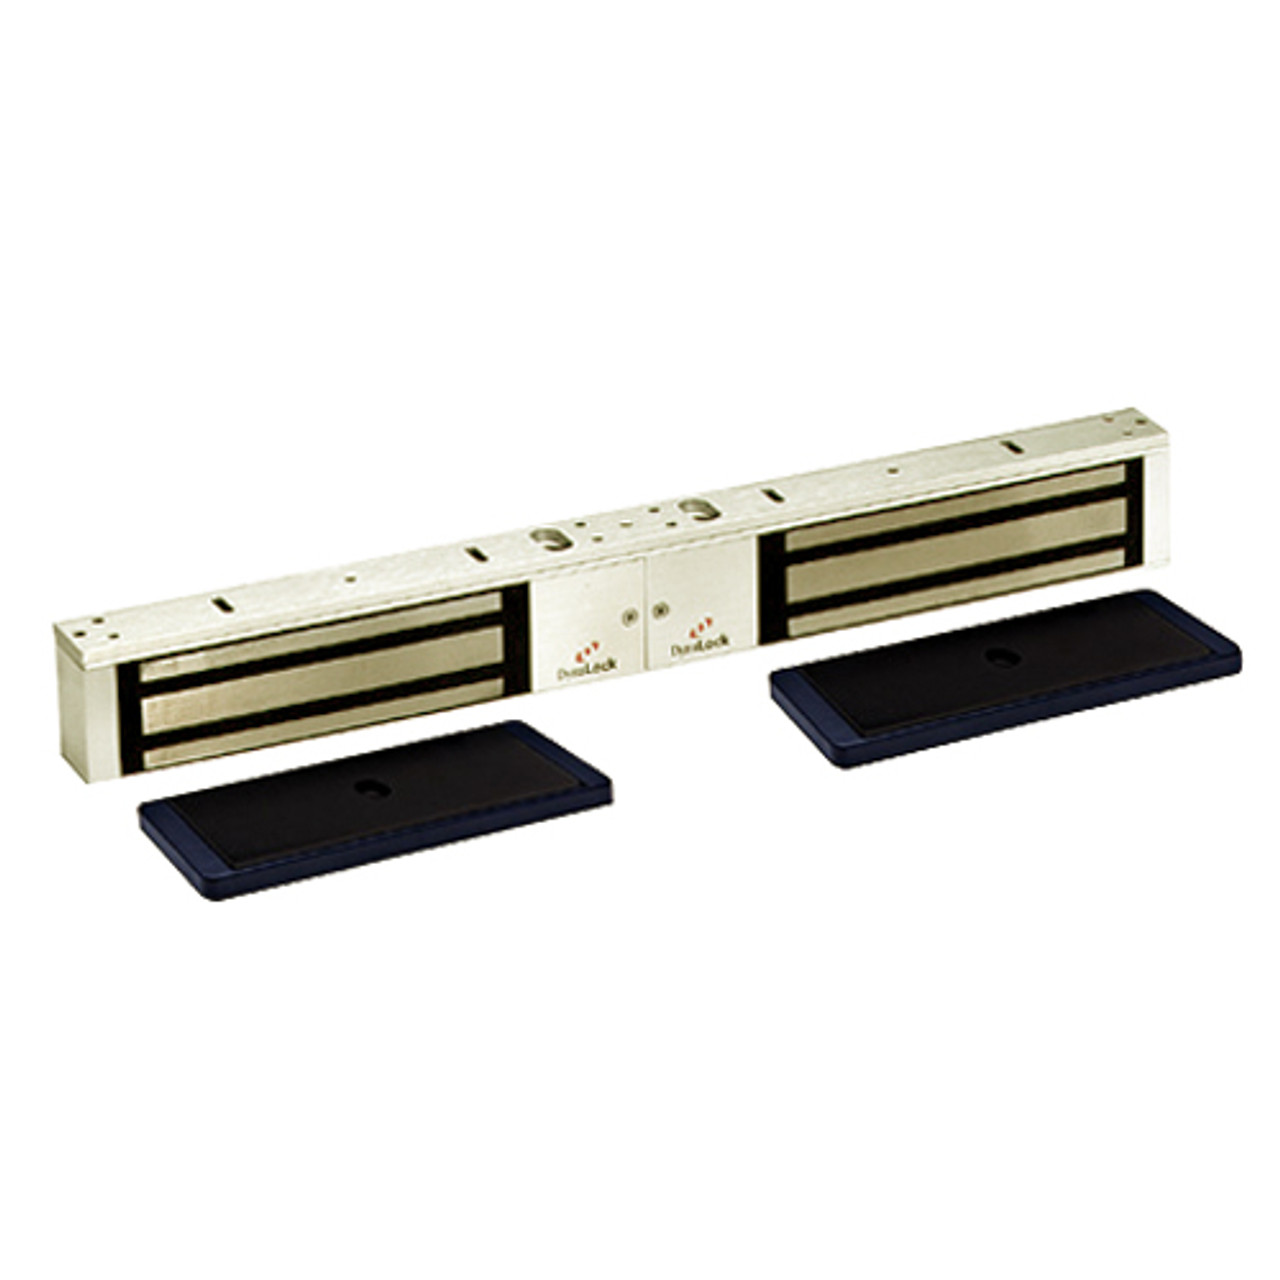 2022-US4-VOP2 DynaLock 2000 Series 1200 LB Holding Force Double Electromagnetic Lock with Value Option Package in Satin Brass